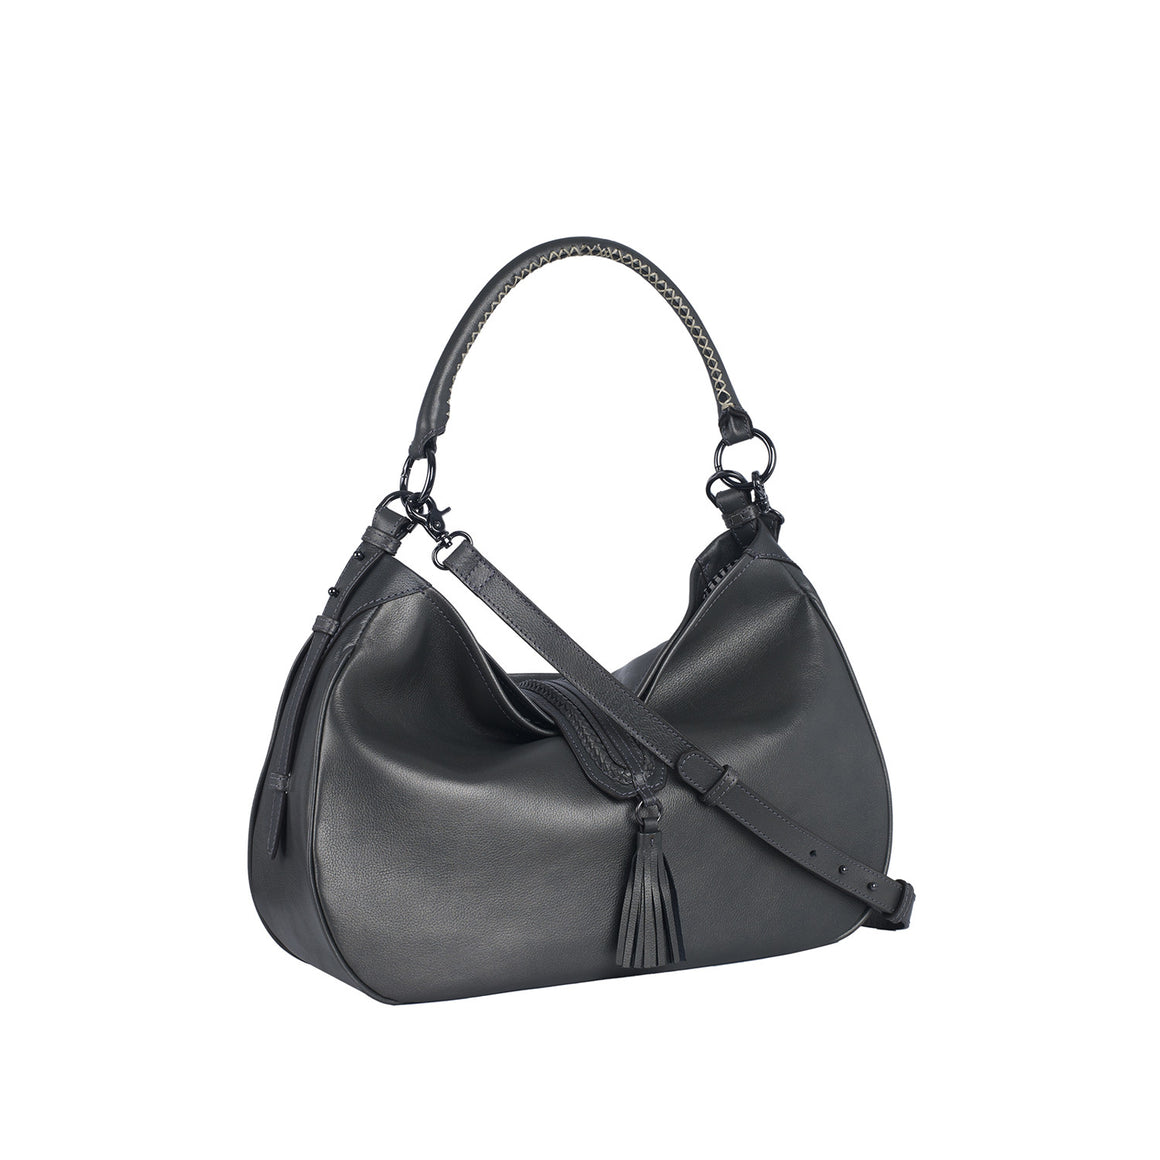 SB 0003 - TOHL EDIE WOMEN'S SHOULDER BAG -  METALLIC SMOKE